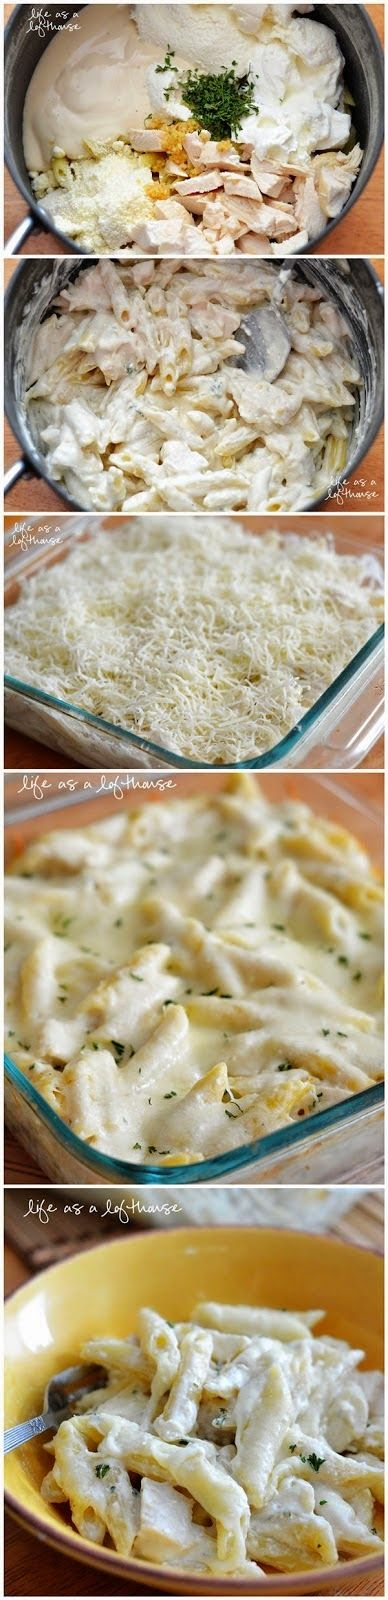 Penne pasta, Cheese and Noodles on Pinterest